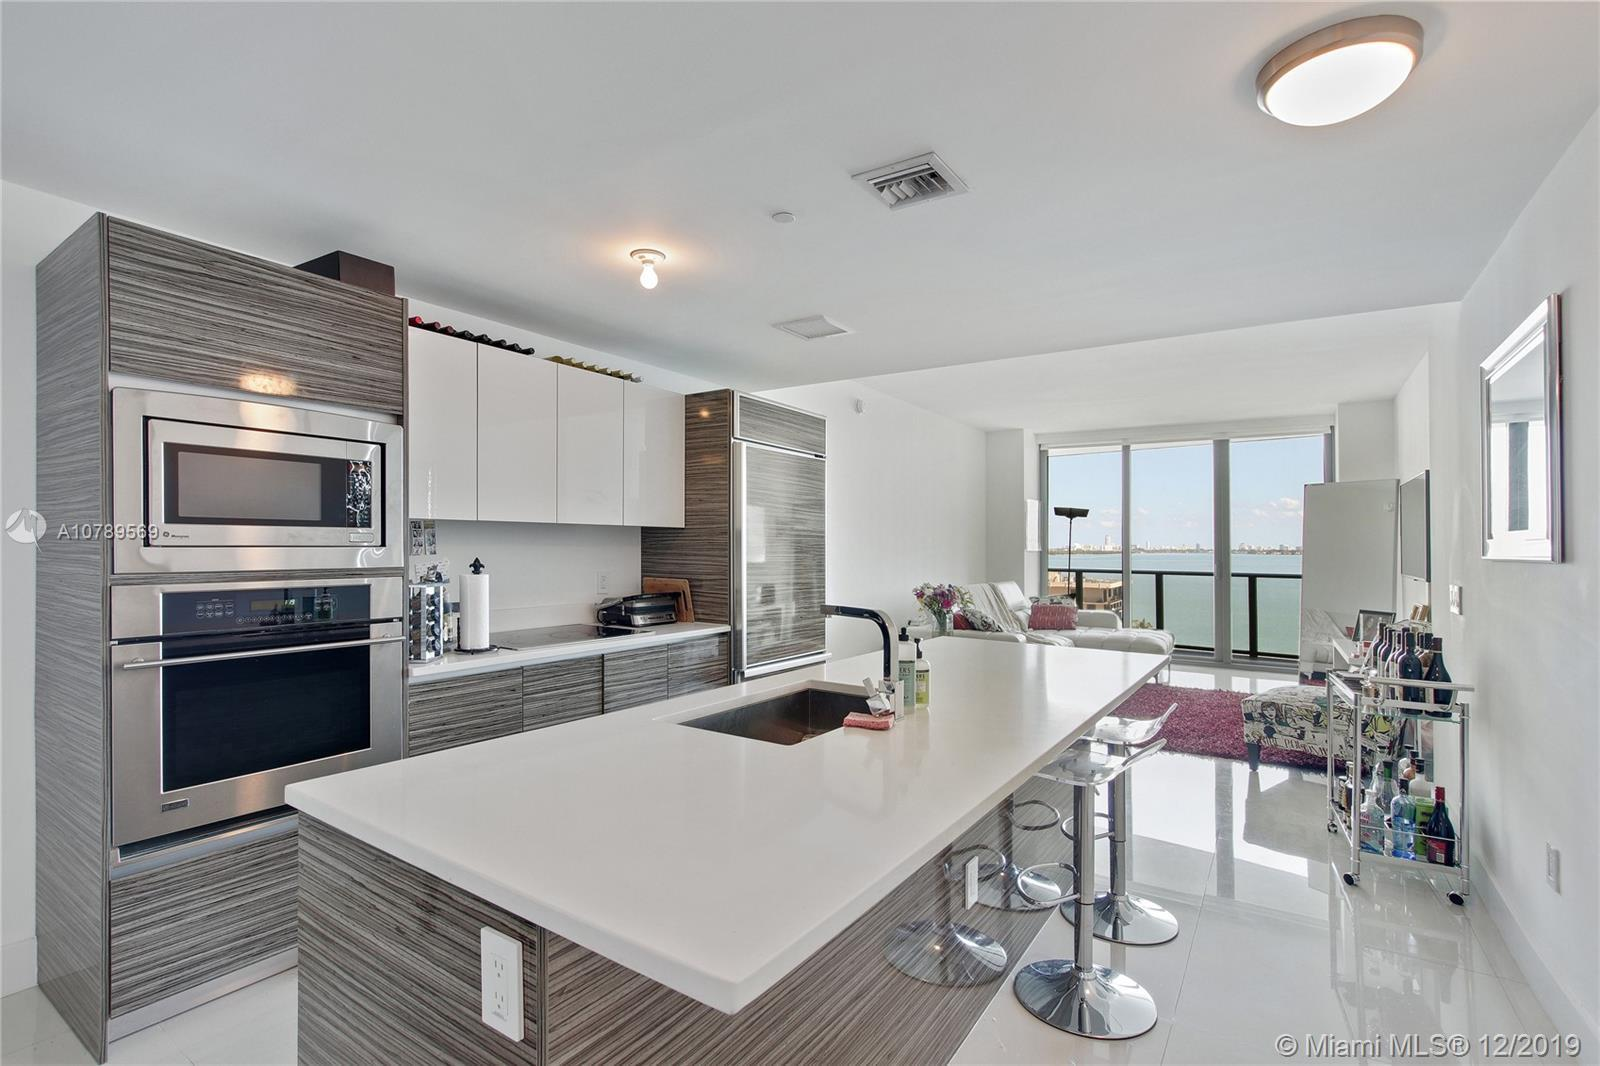 Beautiful unit in a fabulous building. Modern and updated with top of the line kitchen and baths. Wa